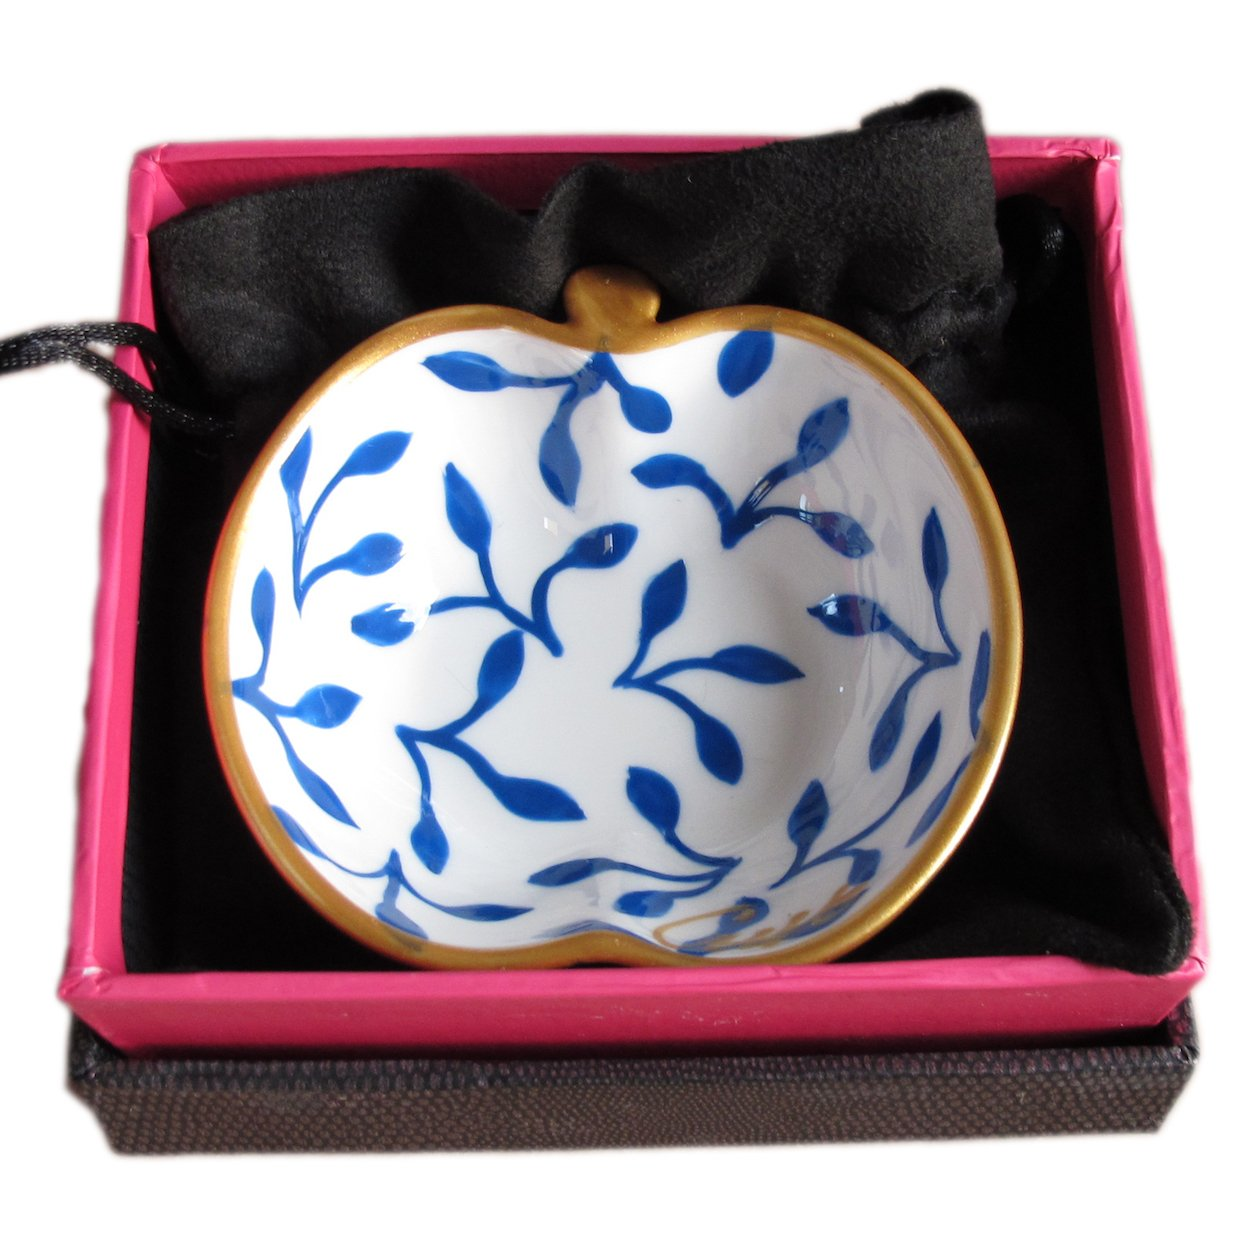 'Muse' - a blue and white hand painted bone china apple bowl in a Luxury Gift Box for a sophisticated present or for anniversary or wedding for decoration, dressing table, bathroom or kitchen Caroline @ CHH Design